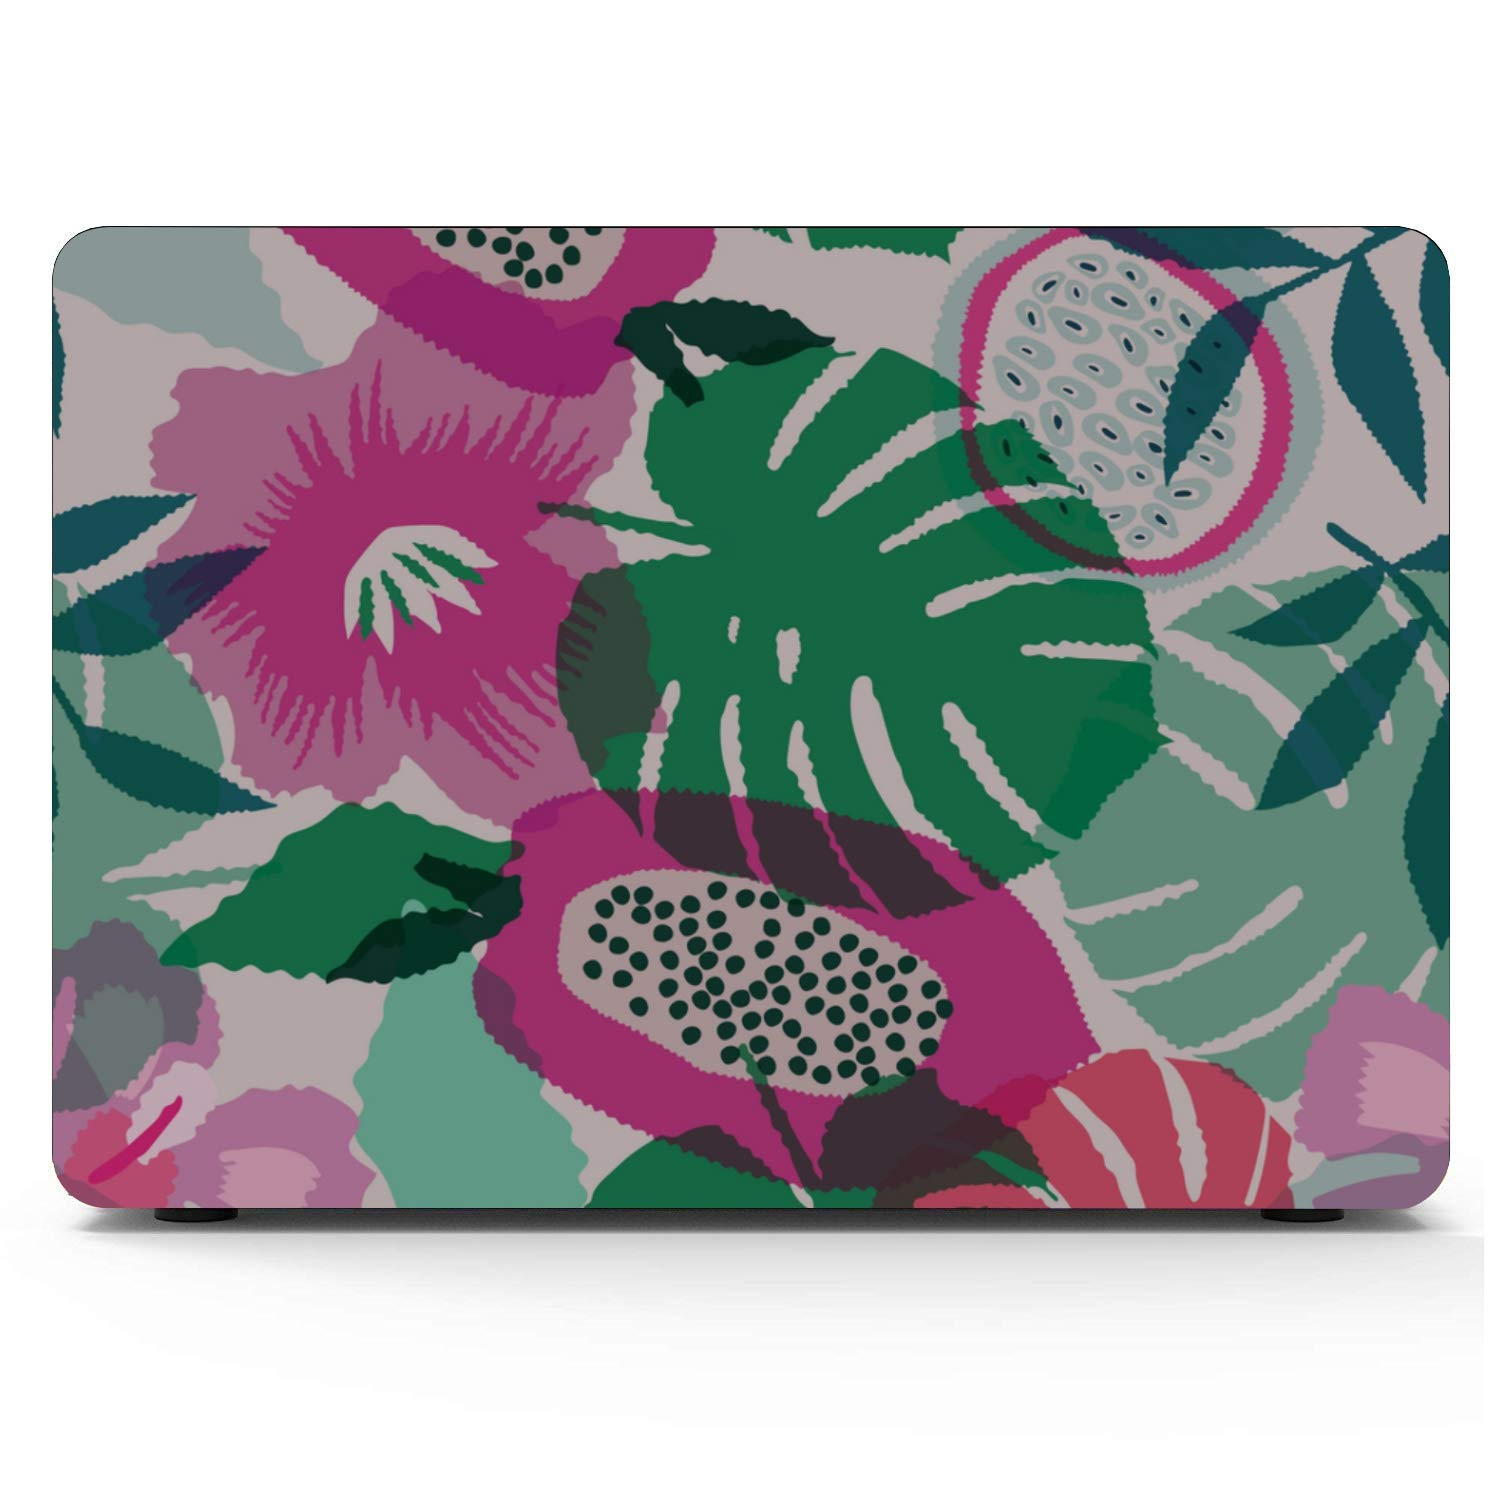 MacBook Pro 13 Cases Summer Sweet Sour Passion Fruit Drink Plastic Hard Shell Compatible Mac Air 11 Pro 13 15 Cover for Laptop Protection for MacBook 2016-2019 Version